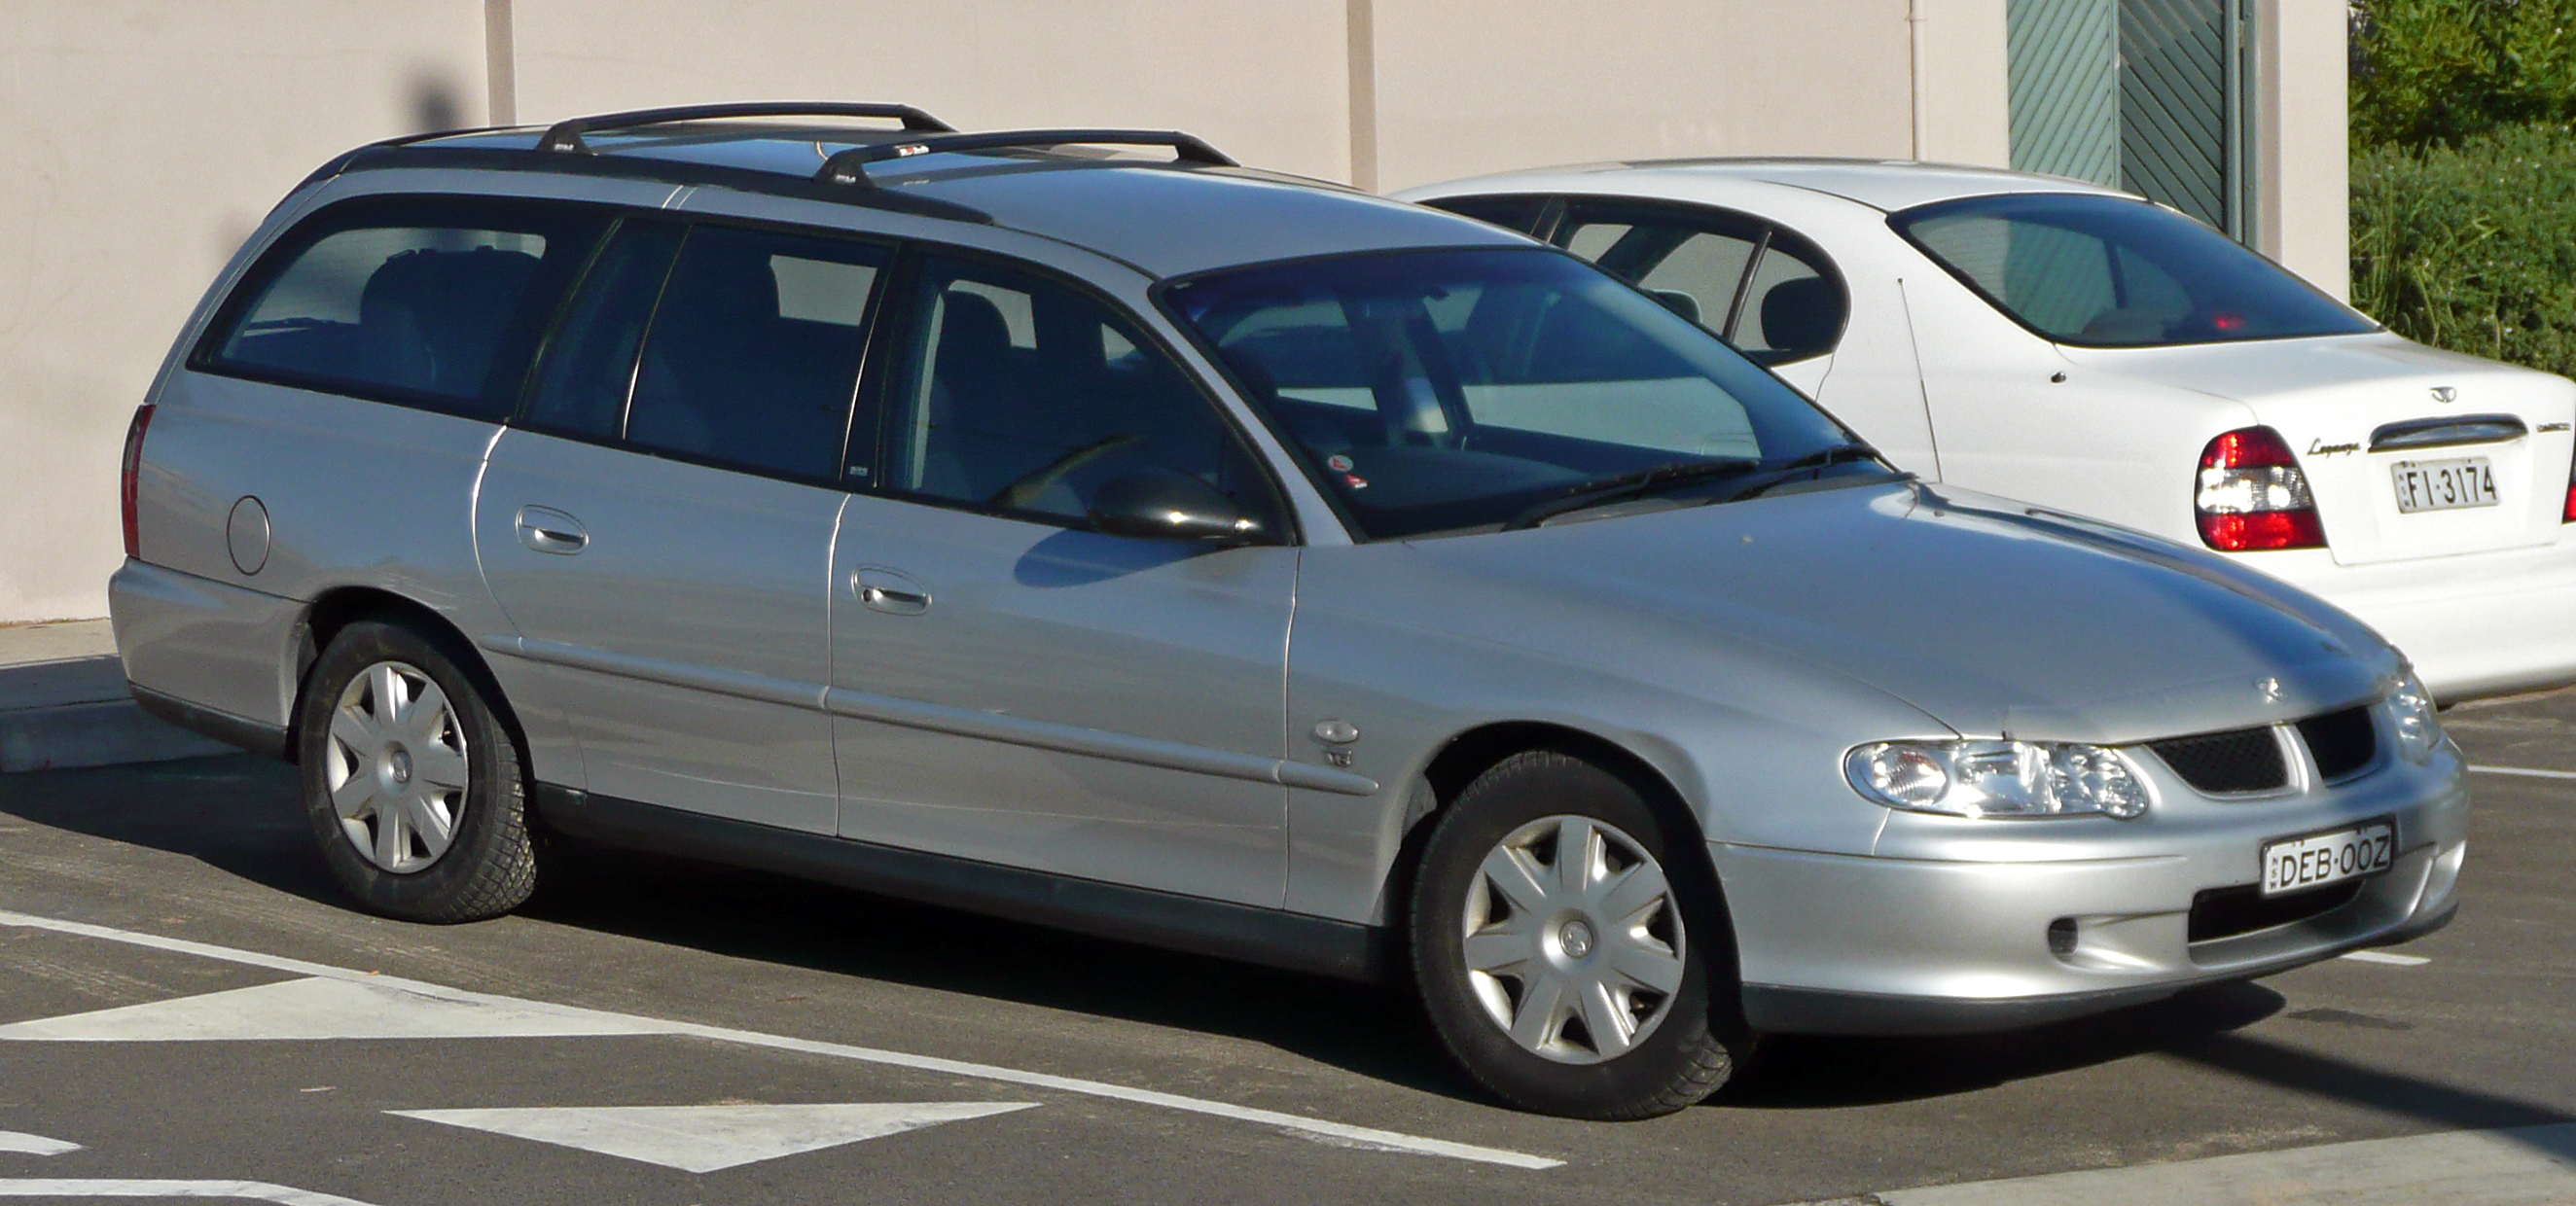 File:2001-2002 Holden VX II Commodore Acclaim station wagon 01.jpg ...